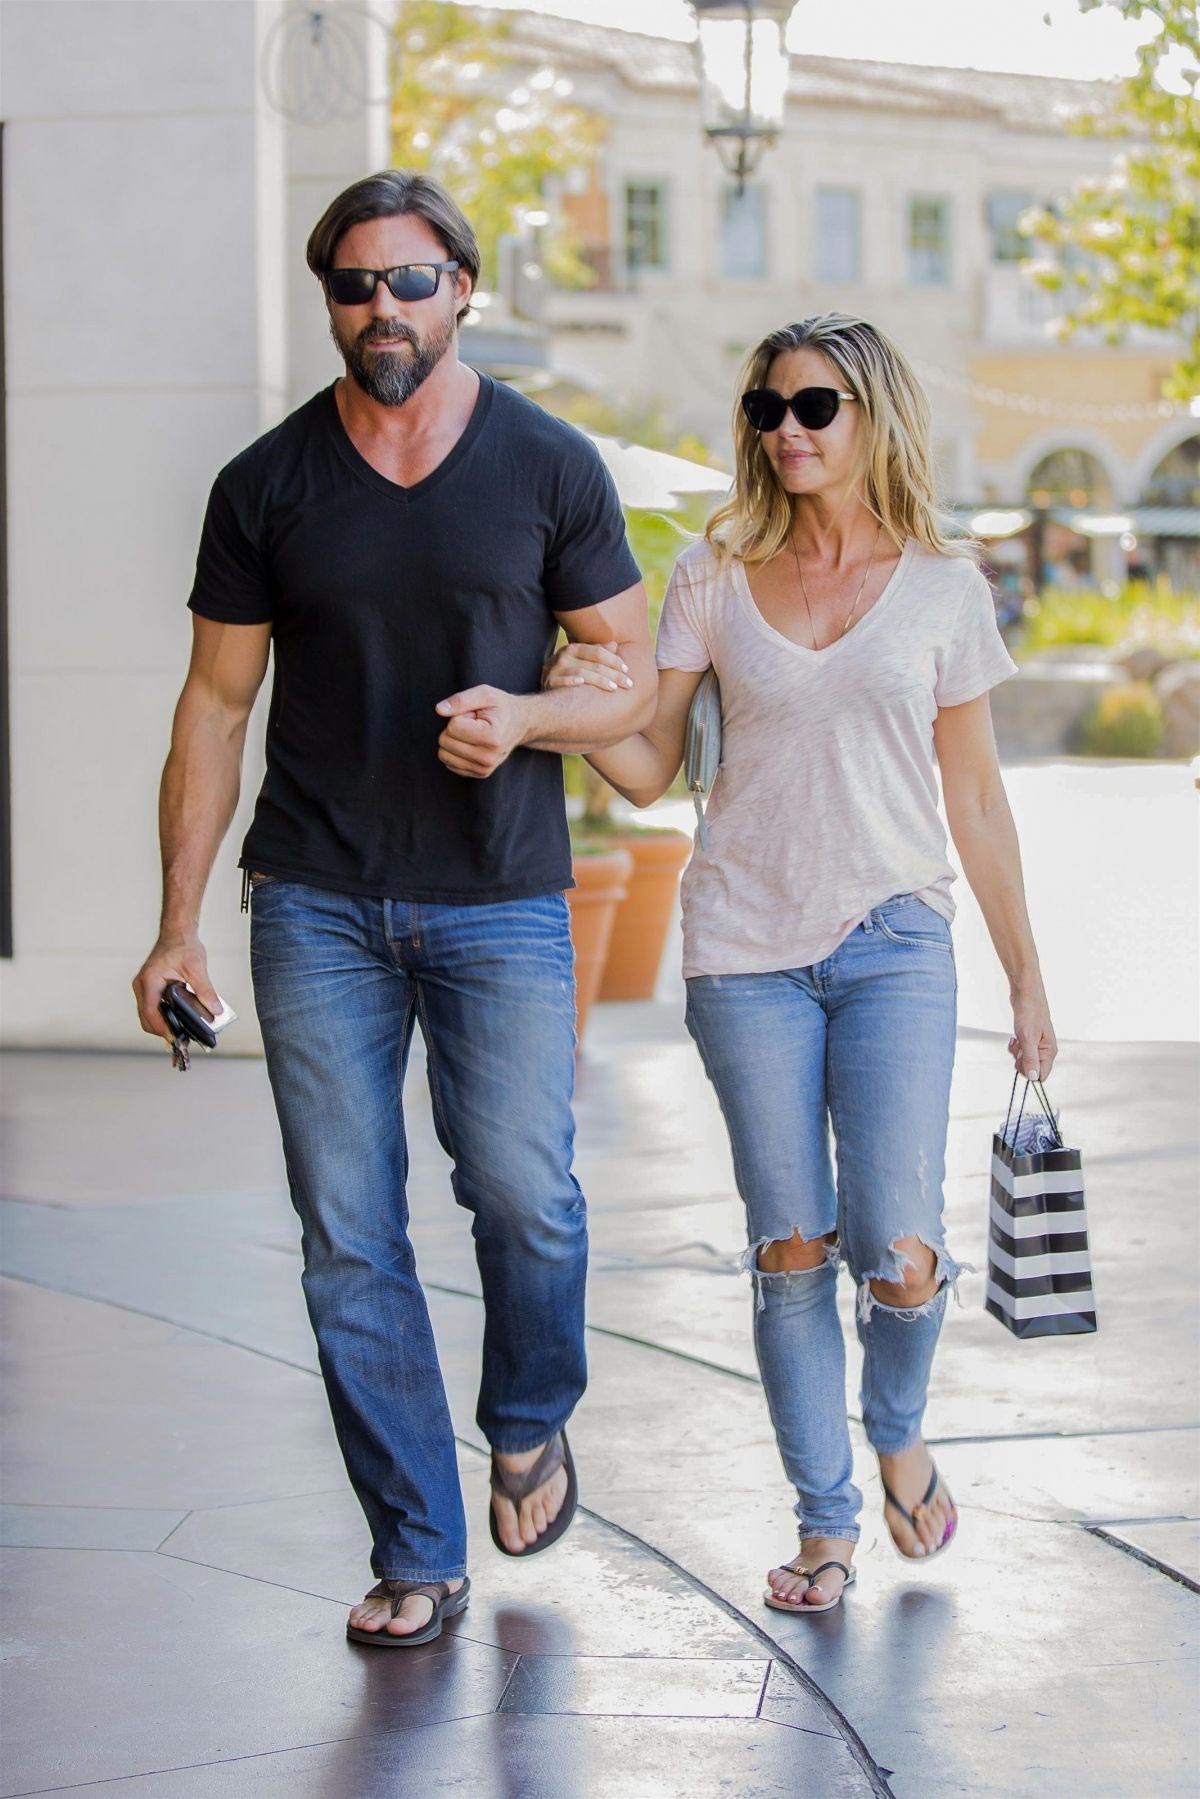 denise richards and aaron phypers out in calabasas 2018 08 14 03 - Denise Richards and Aaron Phypers Out in Calabasas 2018/08/14